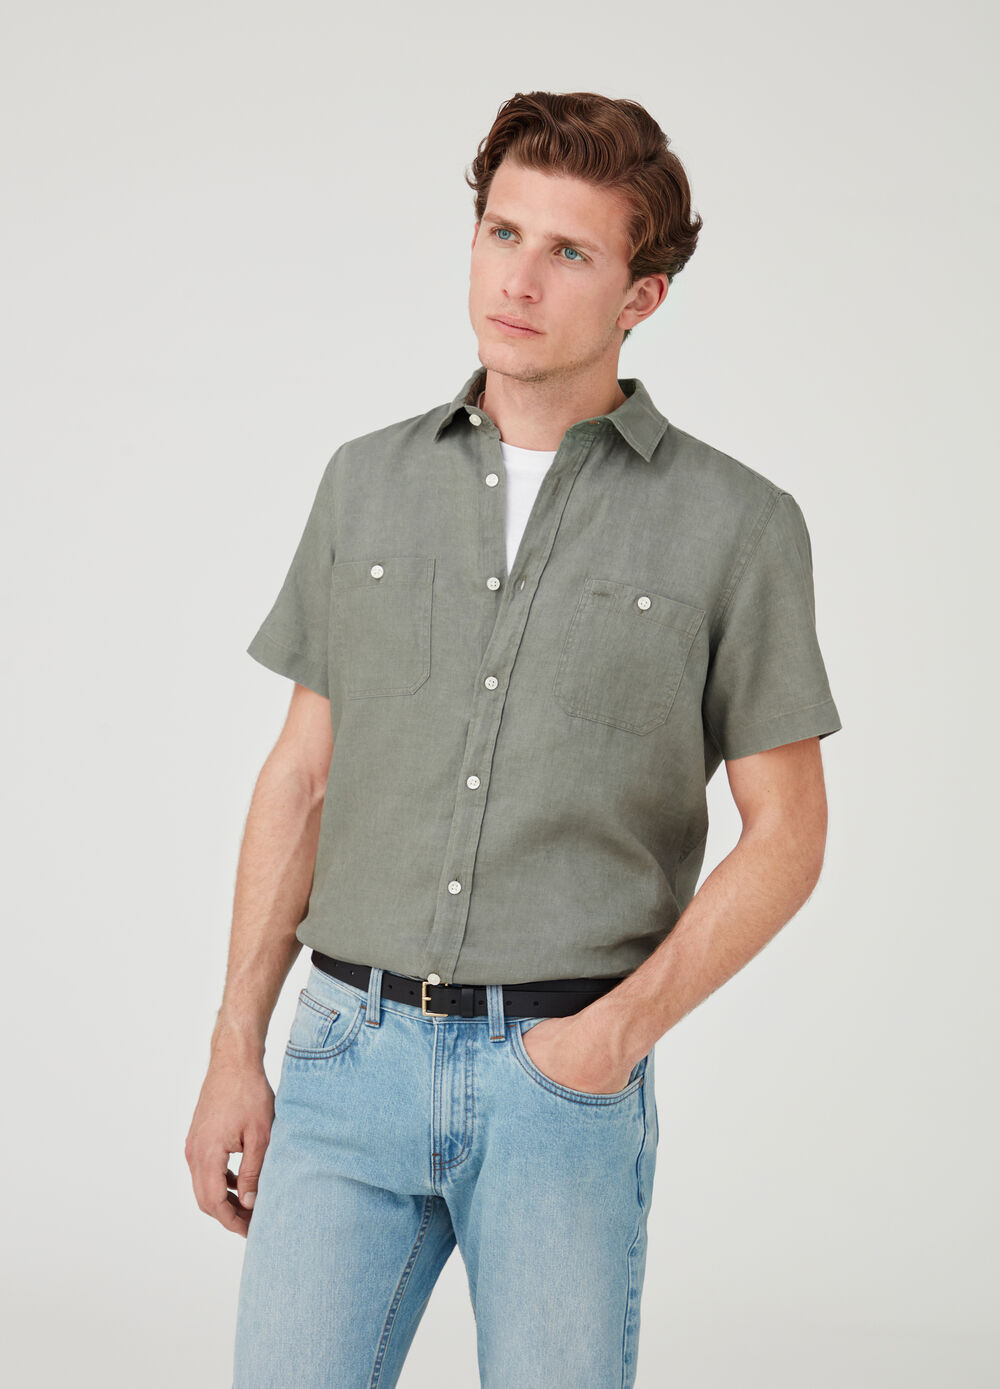 Short-sleeved 100% linen shirt with pockets